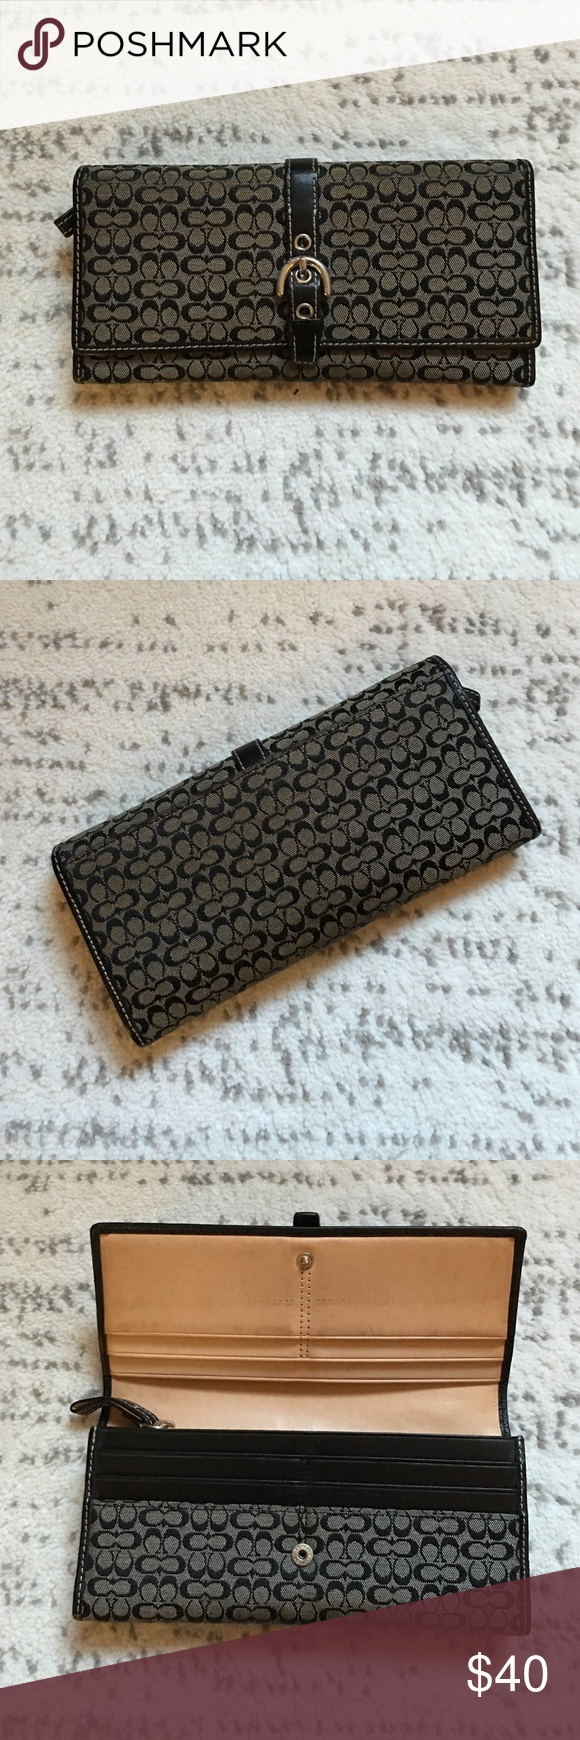 Authentic coach wallet Authentic coach wallet! (Matching purse in other post). Perfect every day wallet with lots of pockets. Outside pocket on the back. ❤️ Coach Bags Wallets